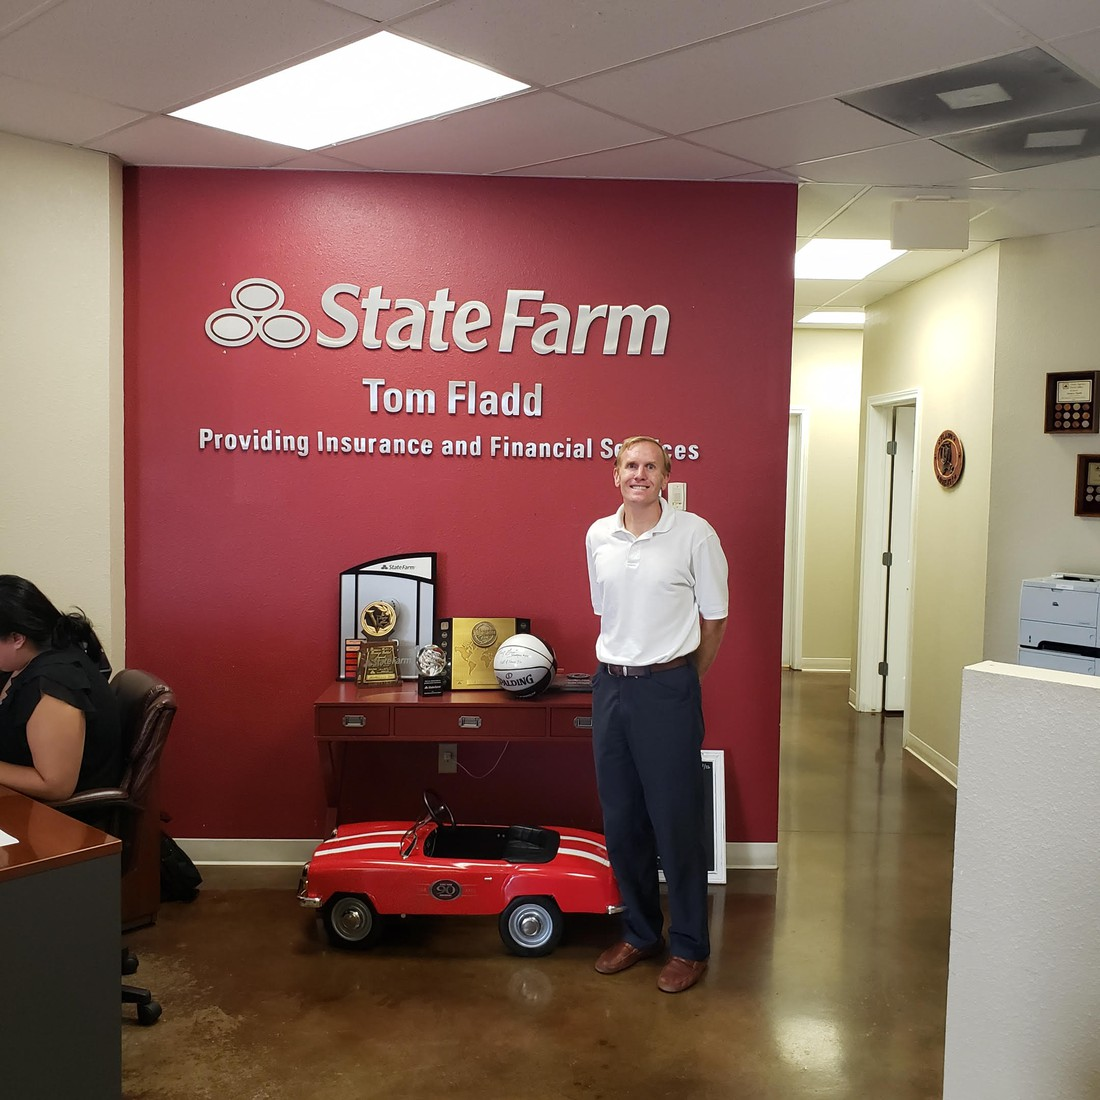 Thank you Tom Fladd and State Farm for the donation of water fountain covers!